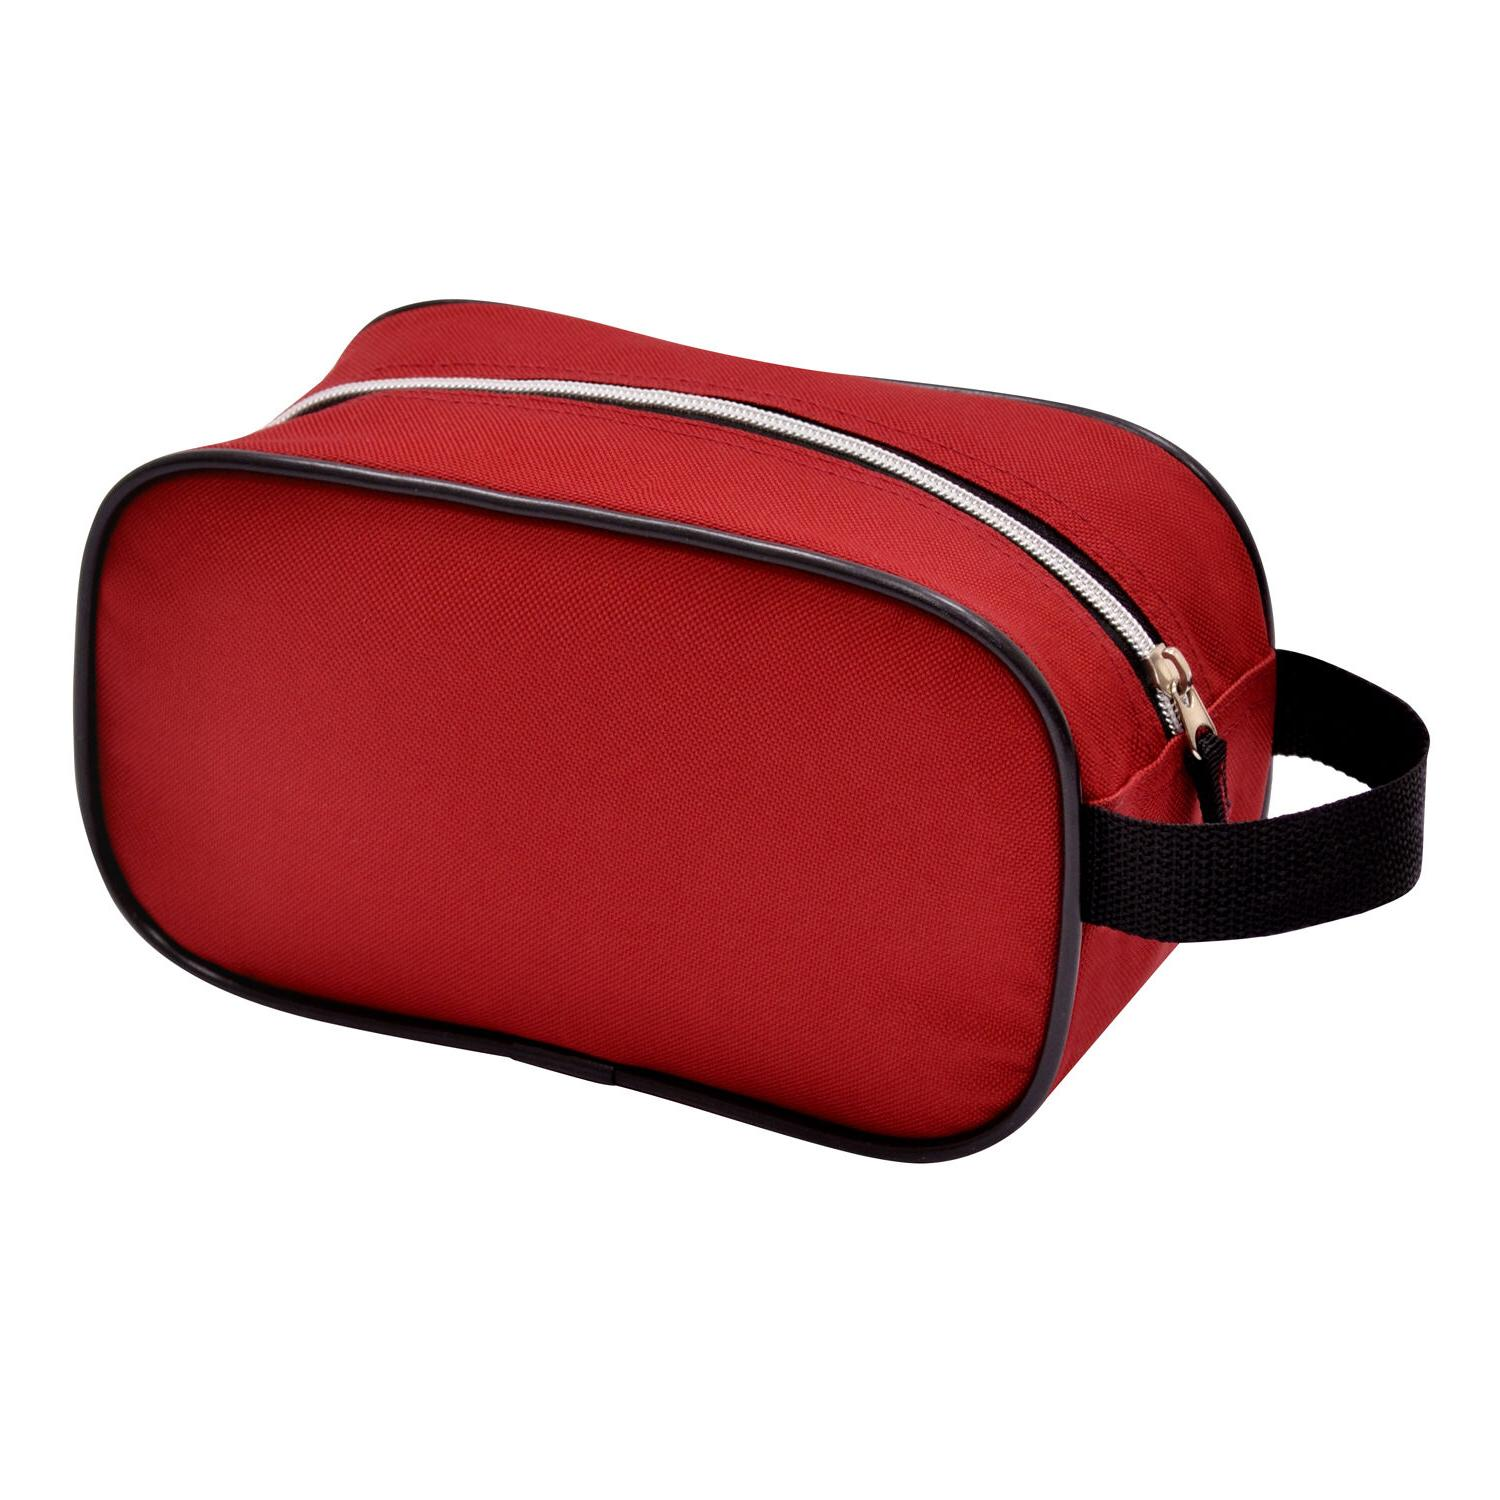 Red Duffel Luggage